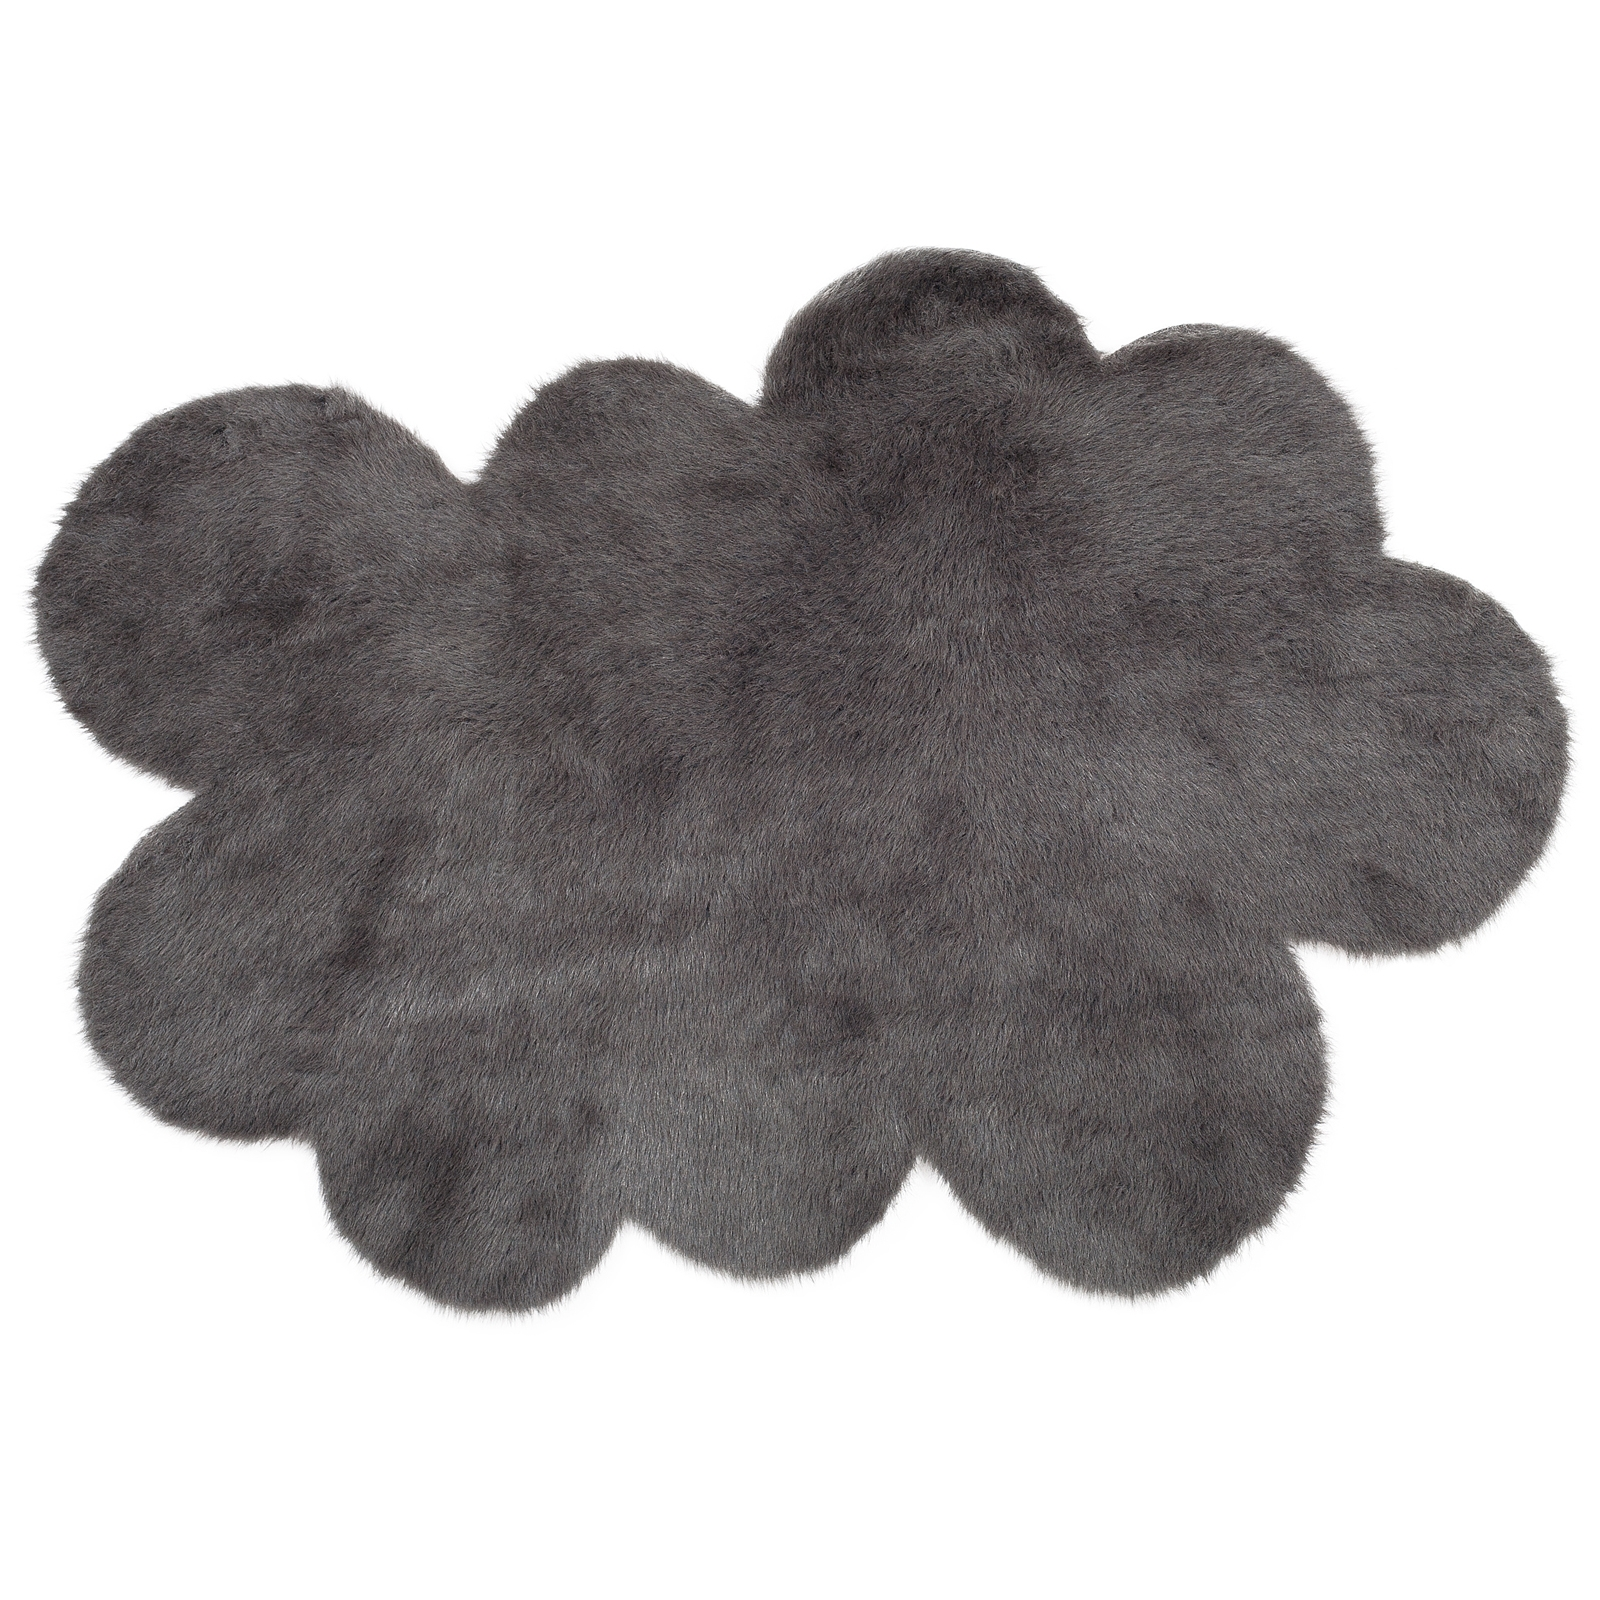 tapis nuage gris anthracite pilepoil pour chambre enfant. Black Bedroom Furniture Sets. Home Design Ideas